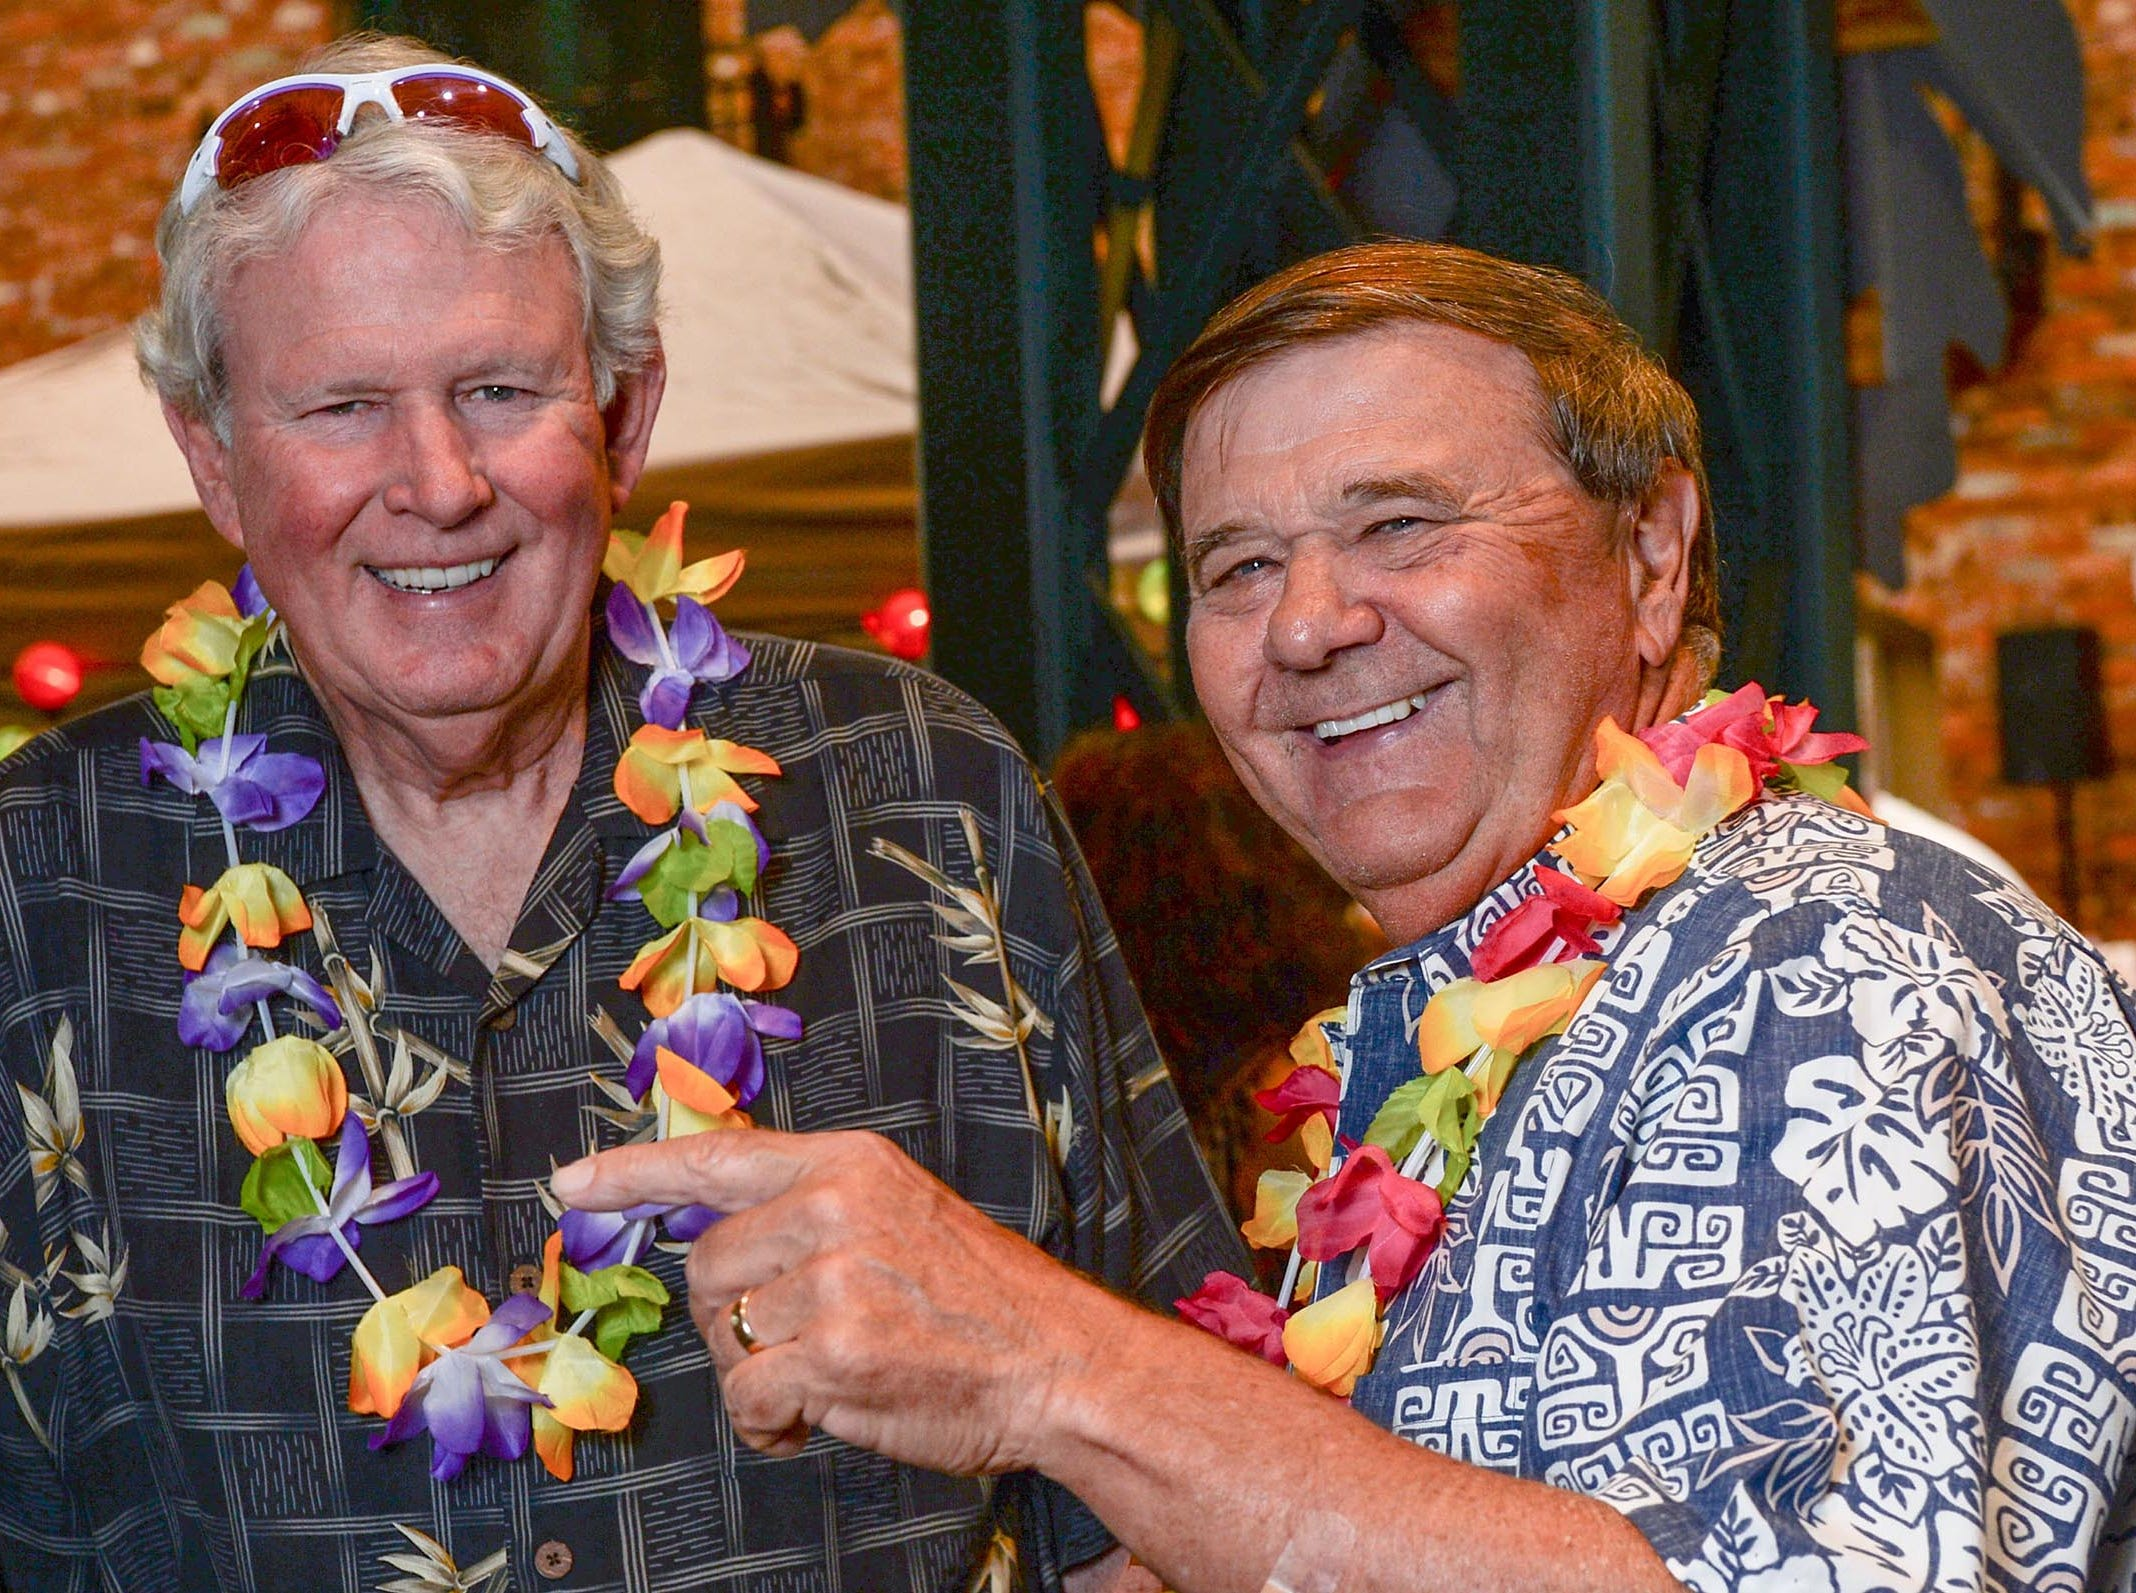 John Miller, Jr., left, and Steve Kay, during the Anderson Area YMCA Ralph Hayes Toyota Taste of Anderson at The Bleckley Station Tuesday. Proceeds from the Aloha theme party benefit programs and services of the Anderson Area YMCA.